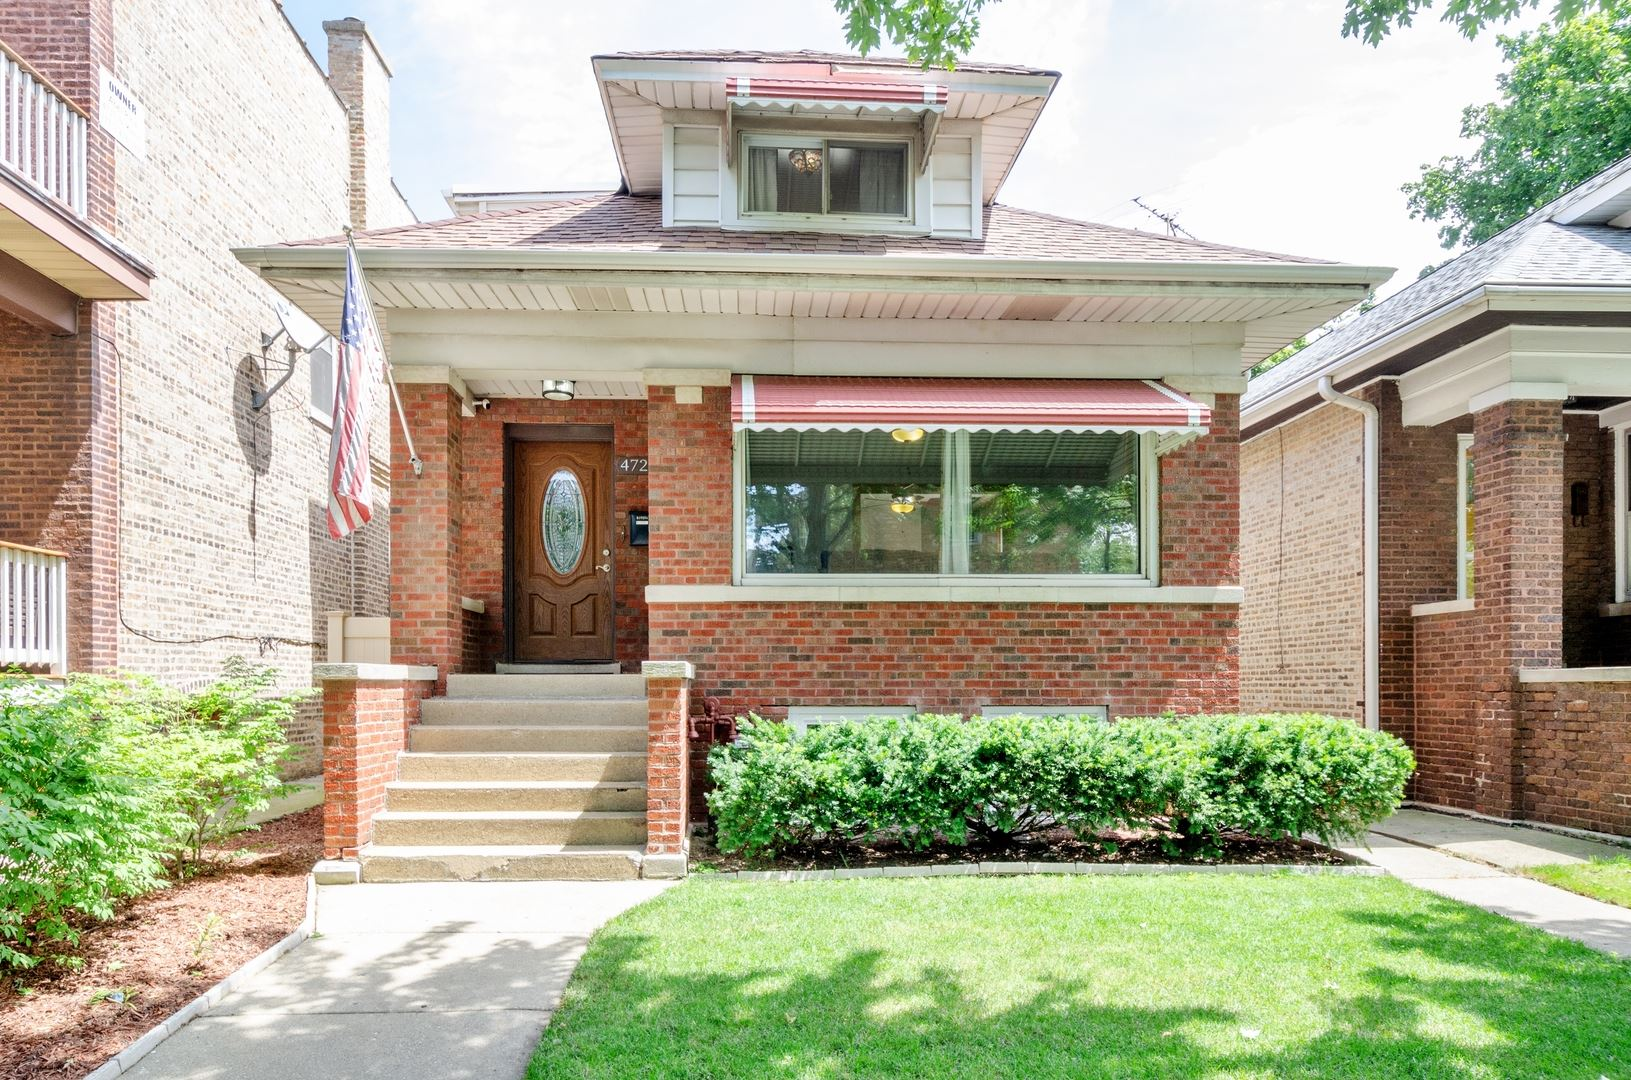 4729 N KEELER Avenue, Chicago, IL 60630 - #: 10802856